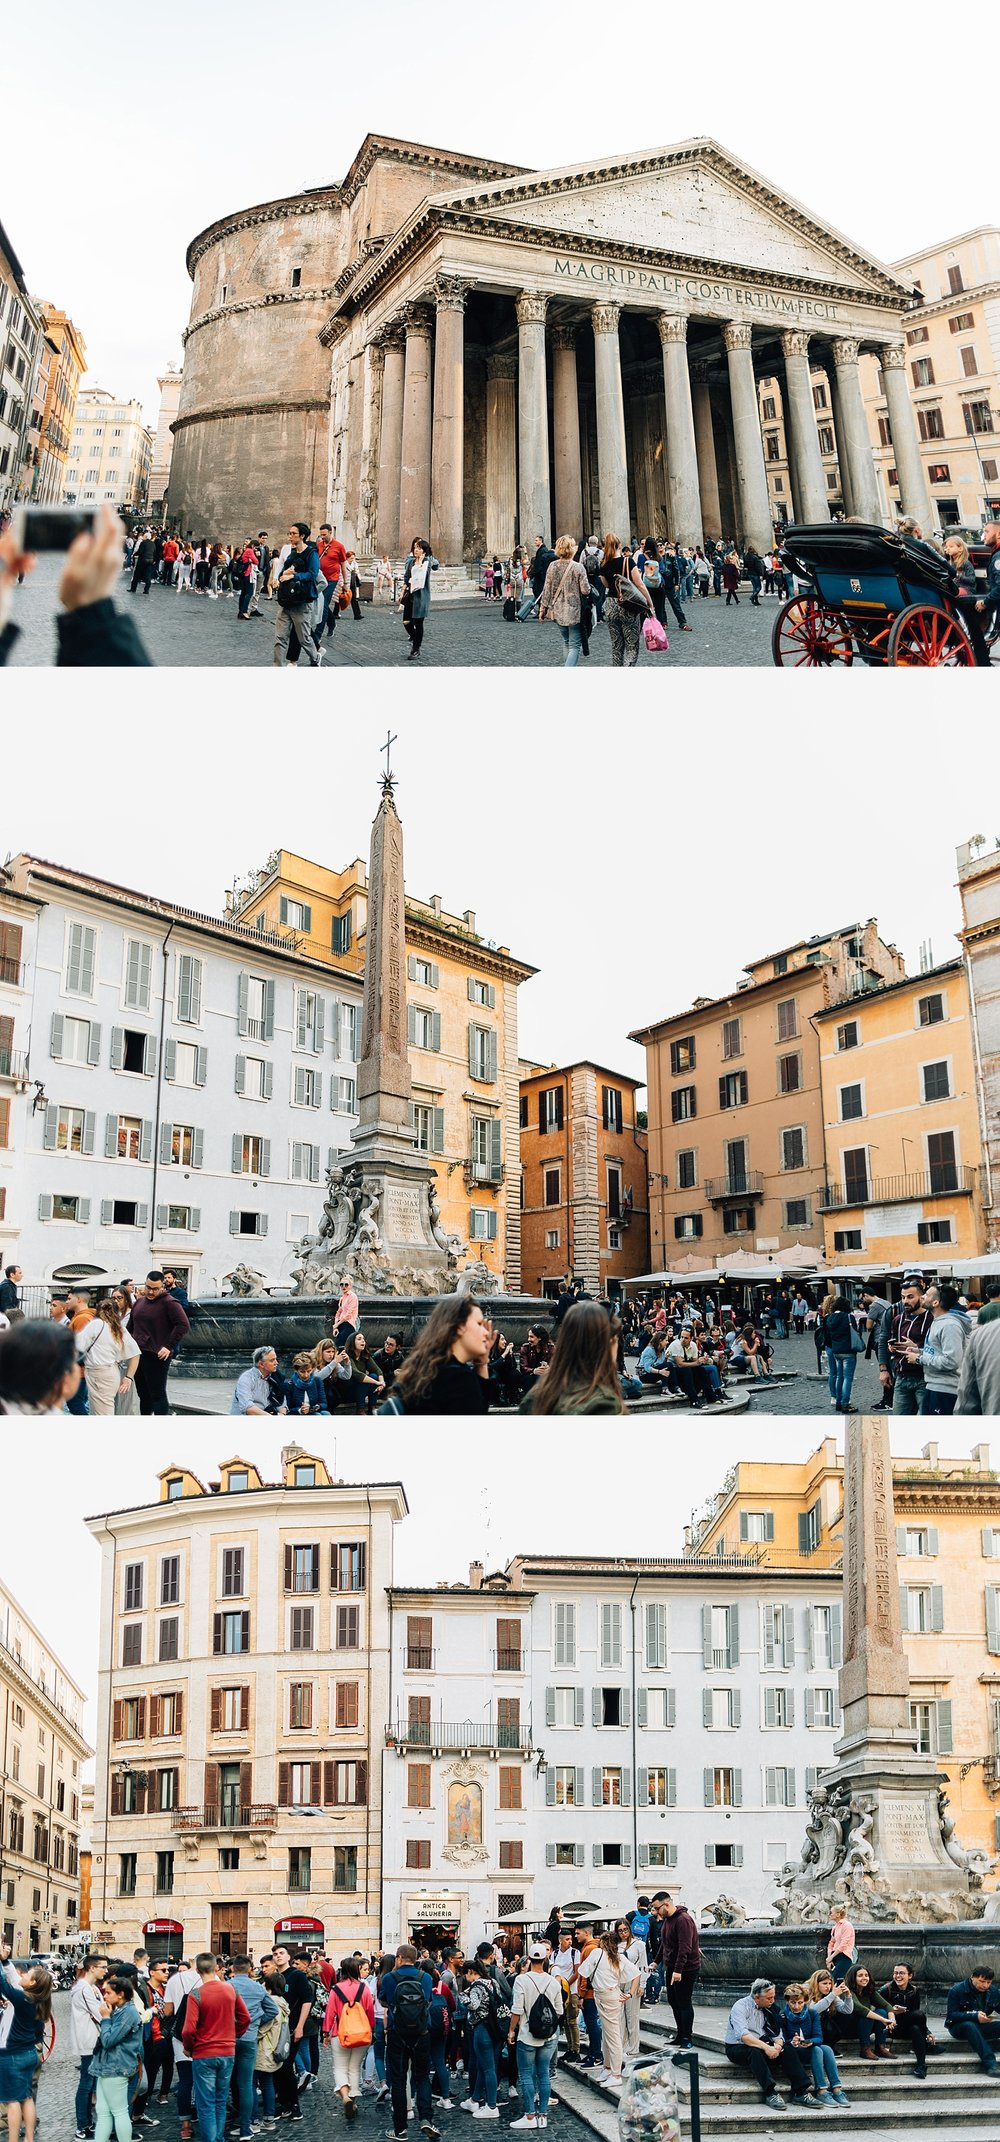 One of my favorite squares - Piazza della Rotonda with the Pantheon.